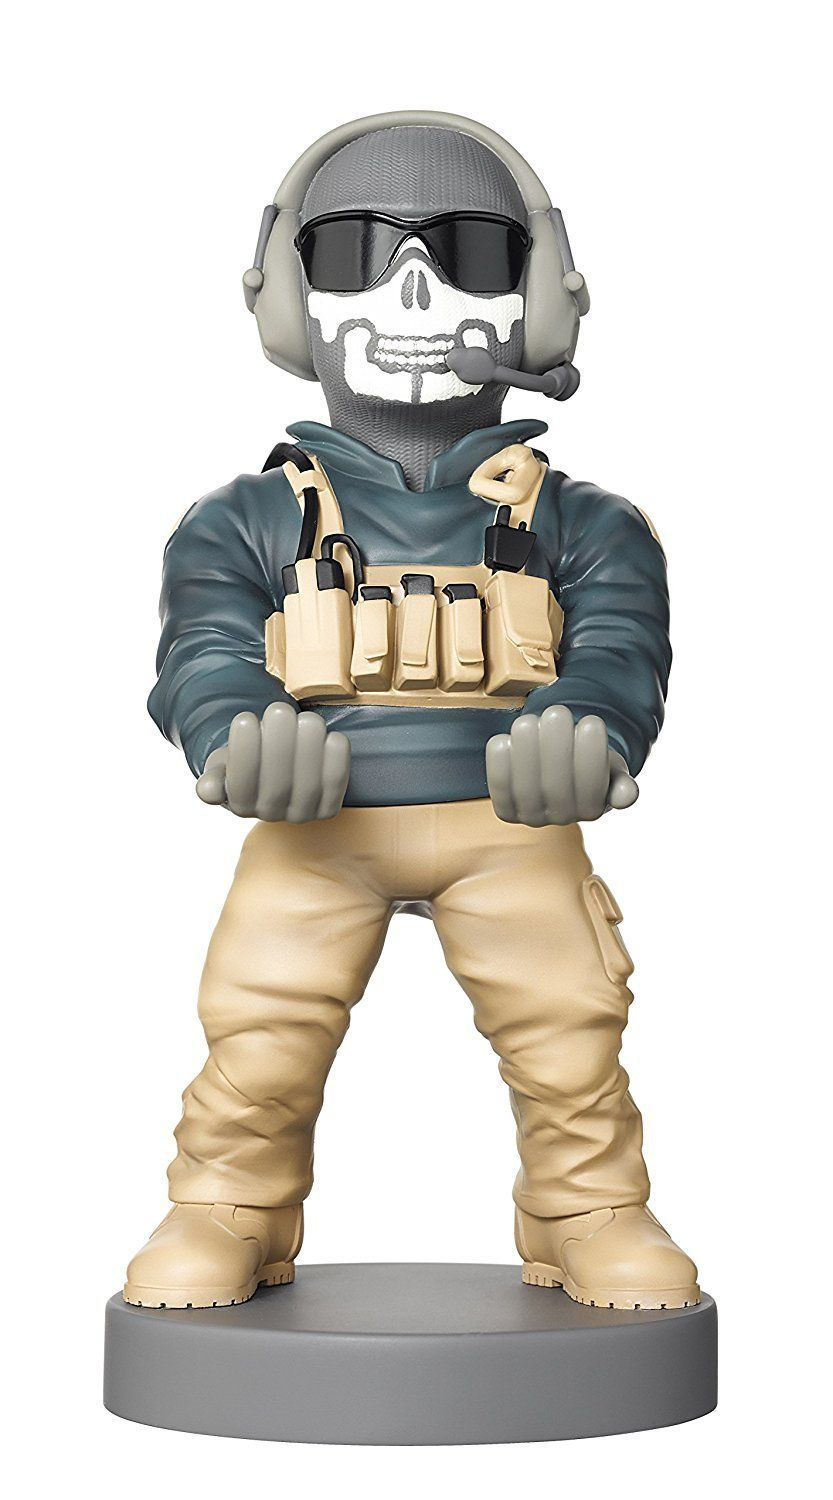 Call of Duty - Ghost - Cable Guy